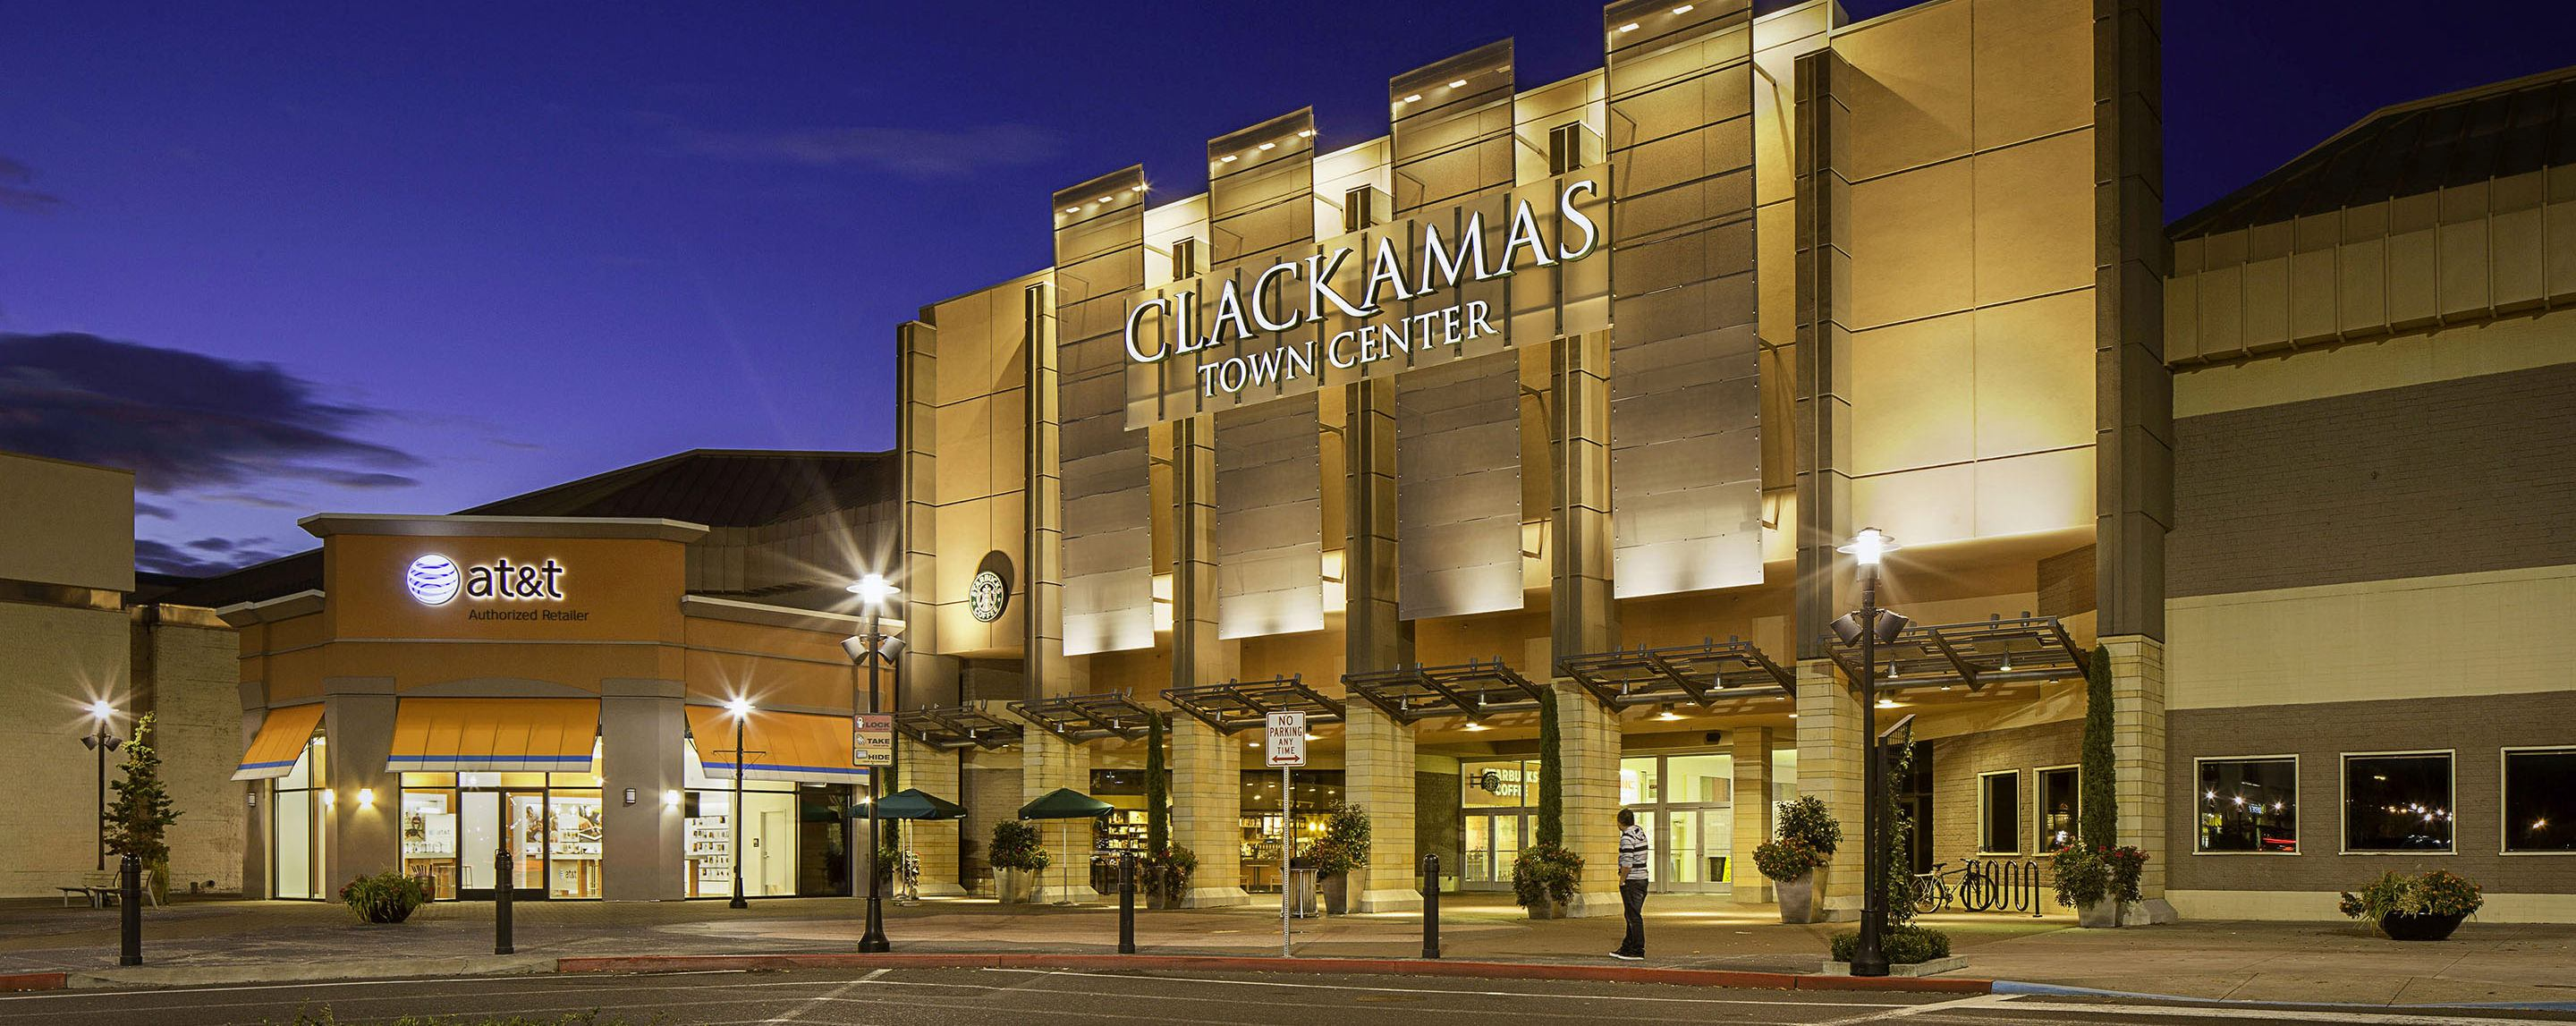 The building of the Clackamas Town Center is illuminated as it sits near an AT&T retail center at ni